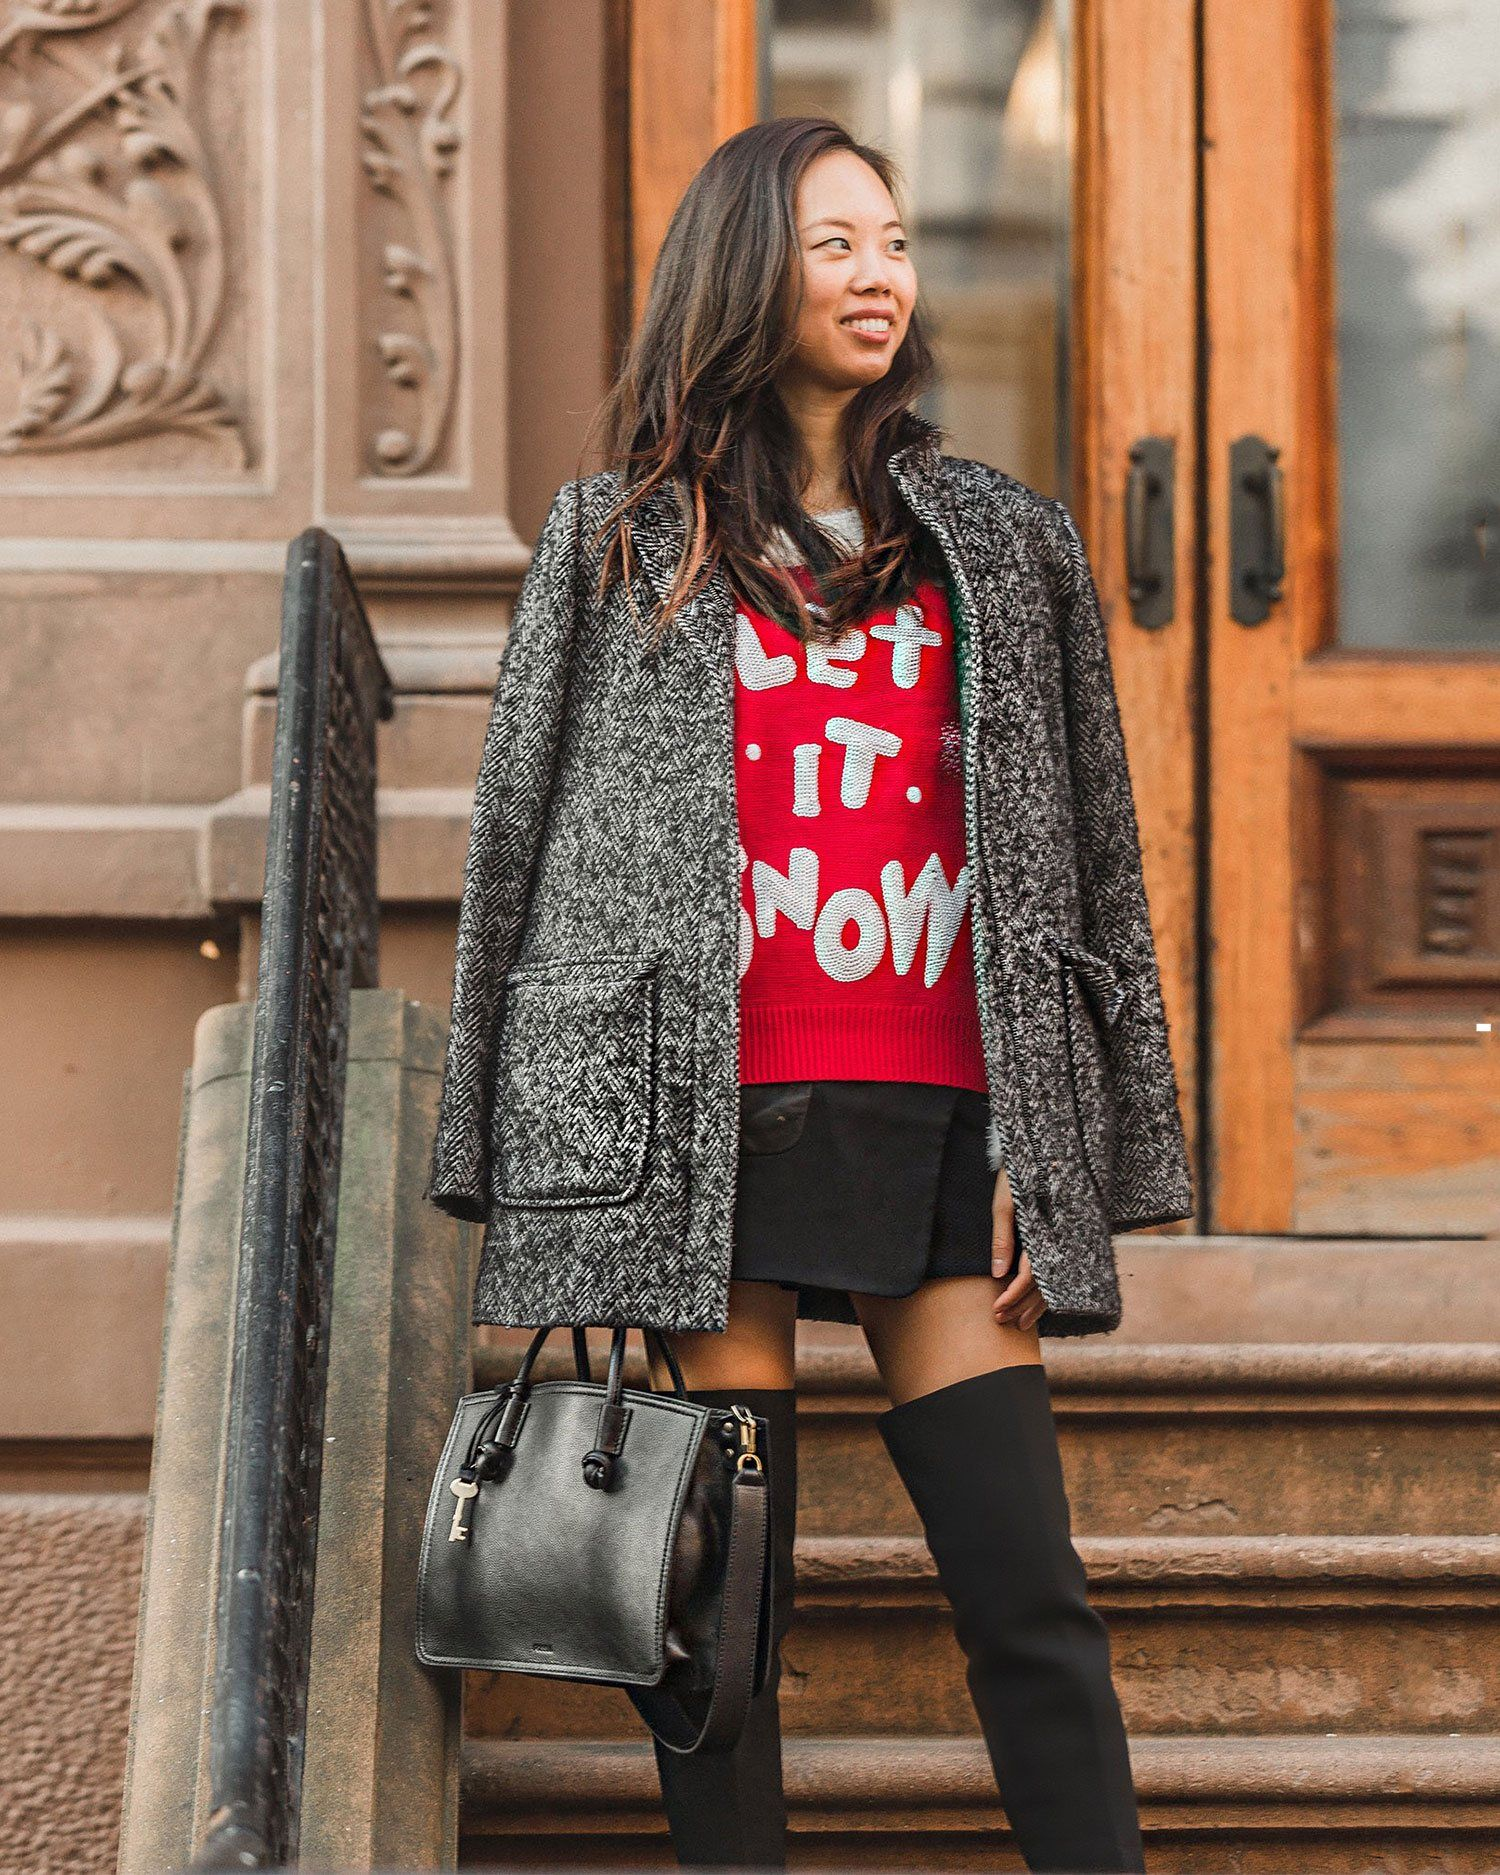 Fashion style Outfit Winter ideas: tacky christmas party attire for lady